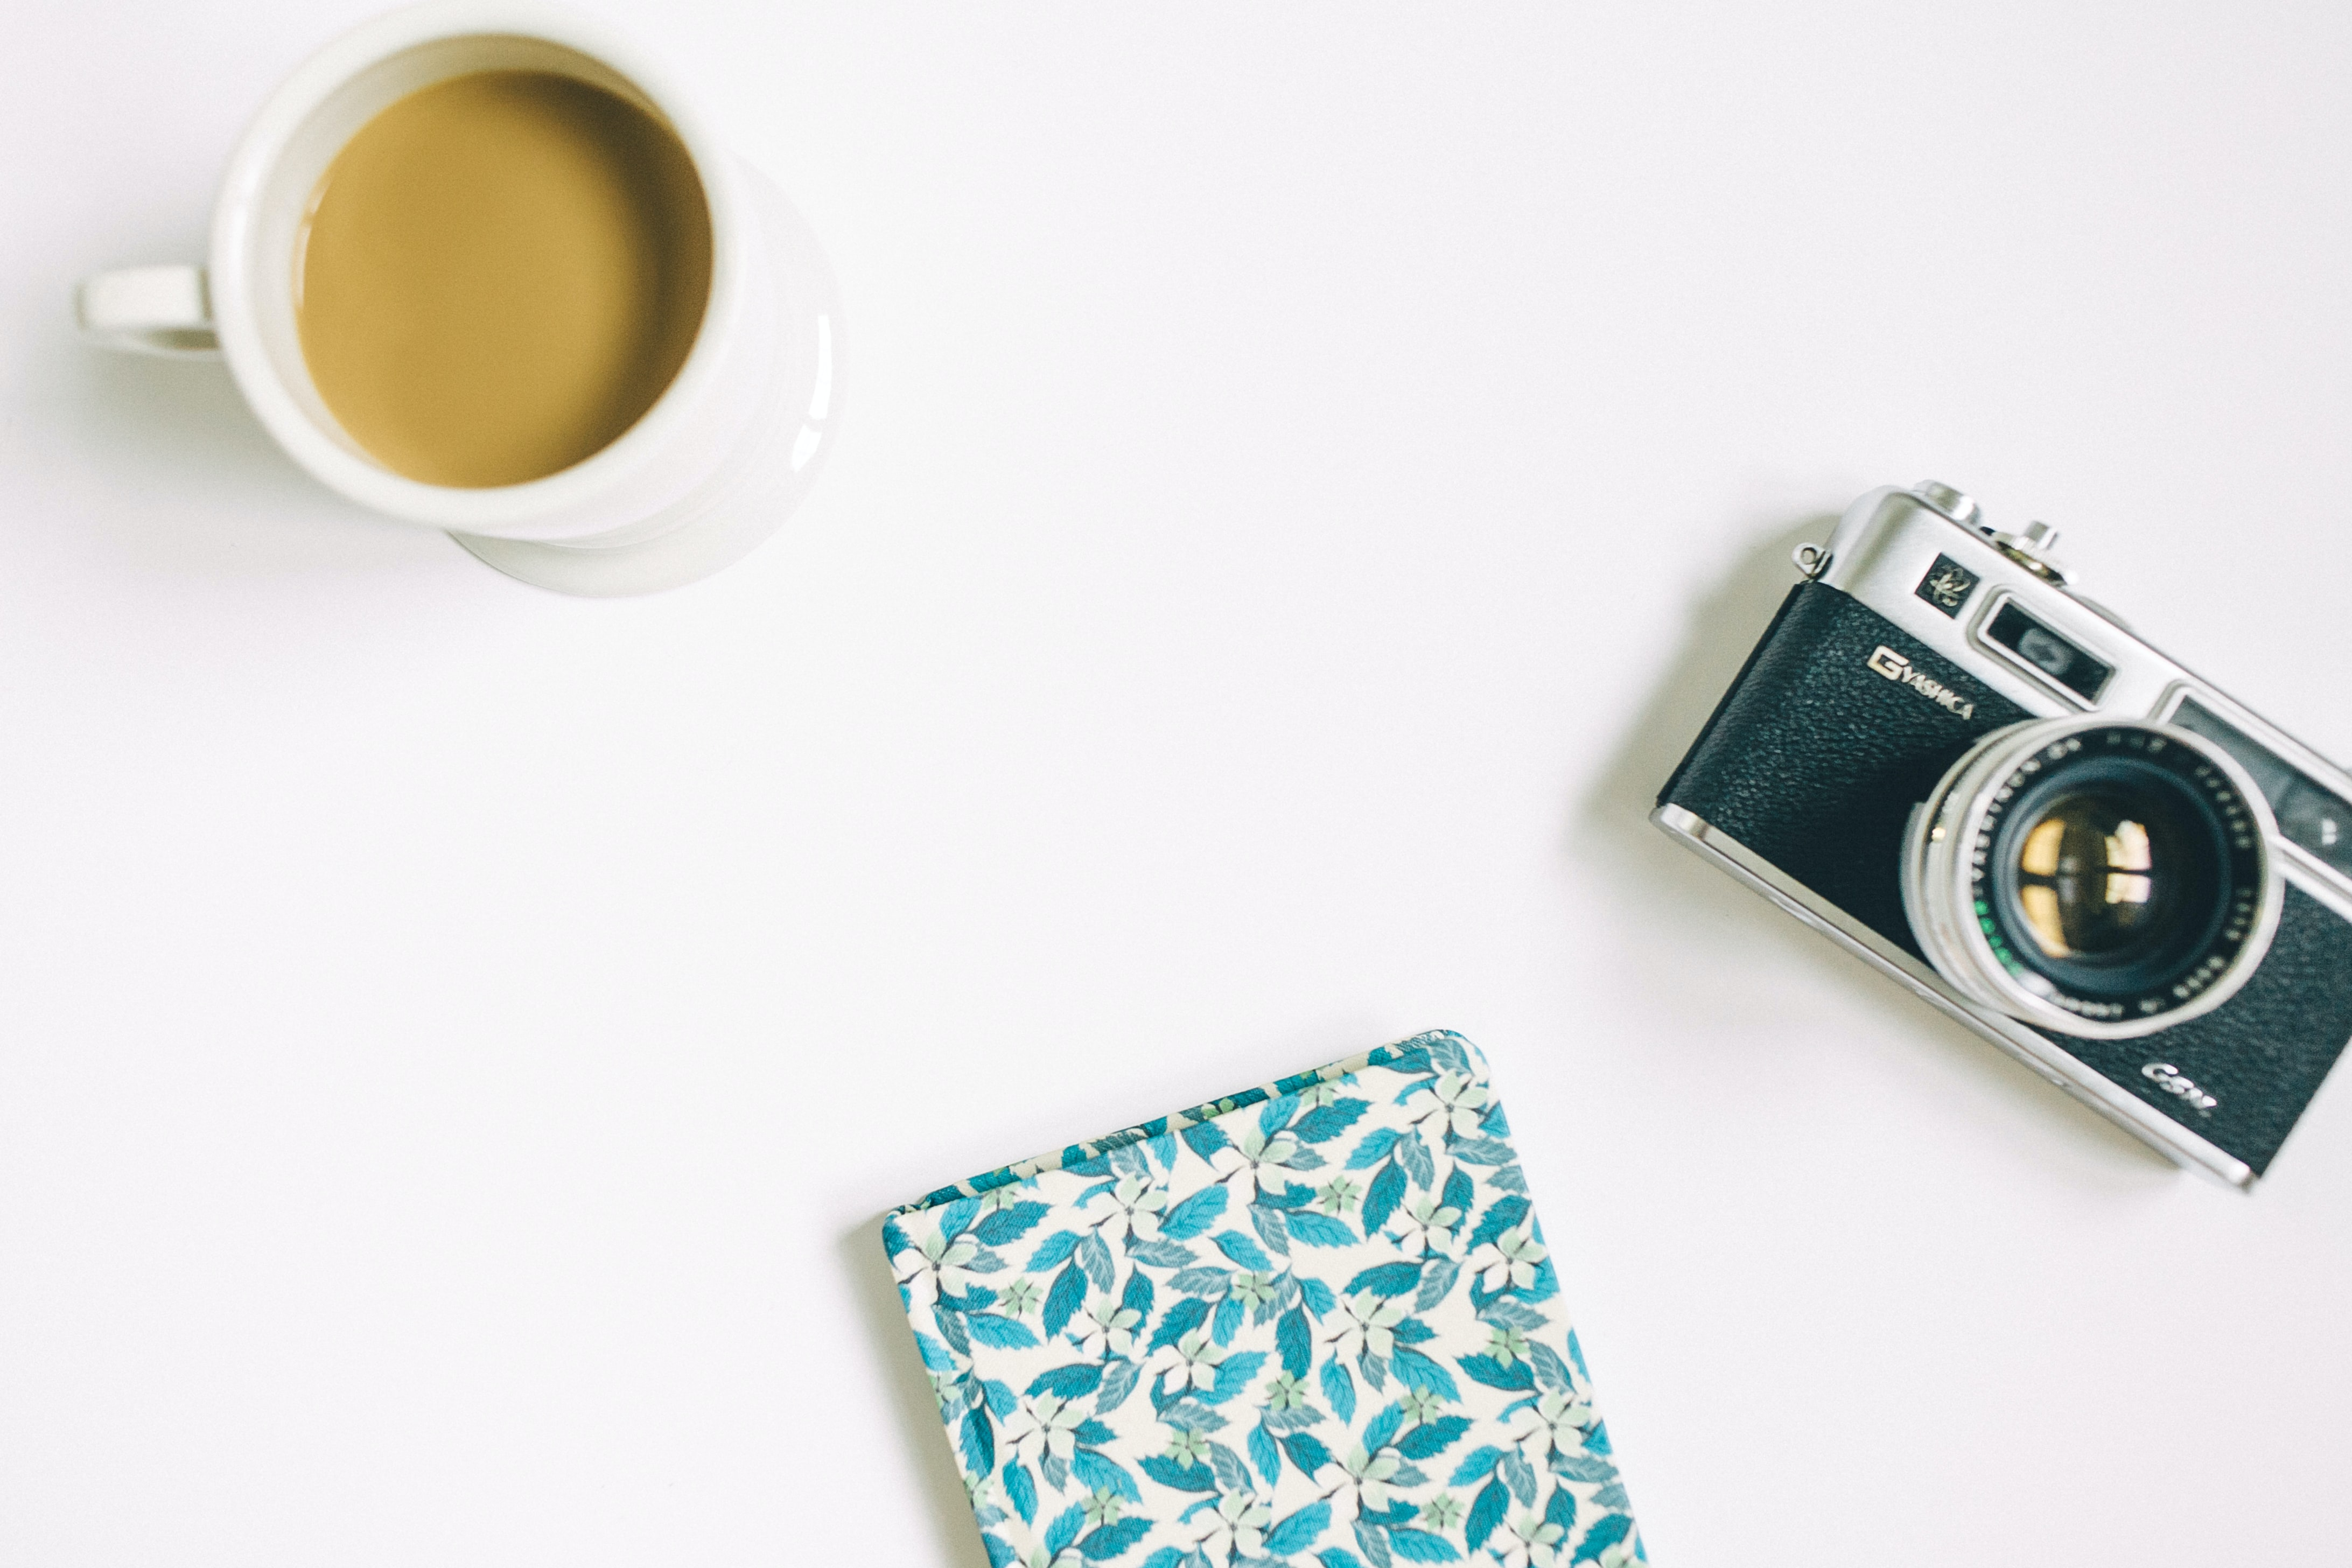 black and grey SLR camera, floral notebook, and white ceramic mug